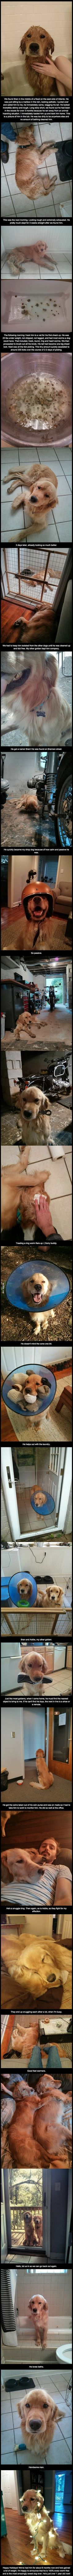 Such a sweet story (and pictures) of a guy who rescued a golden retriever this past summer who was just hanging out in the wilds of Atlanta.